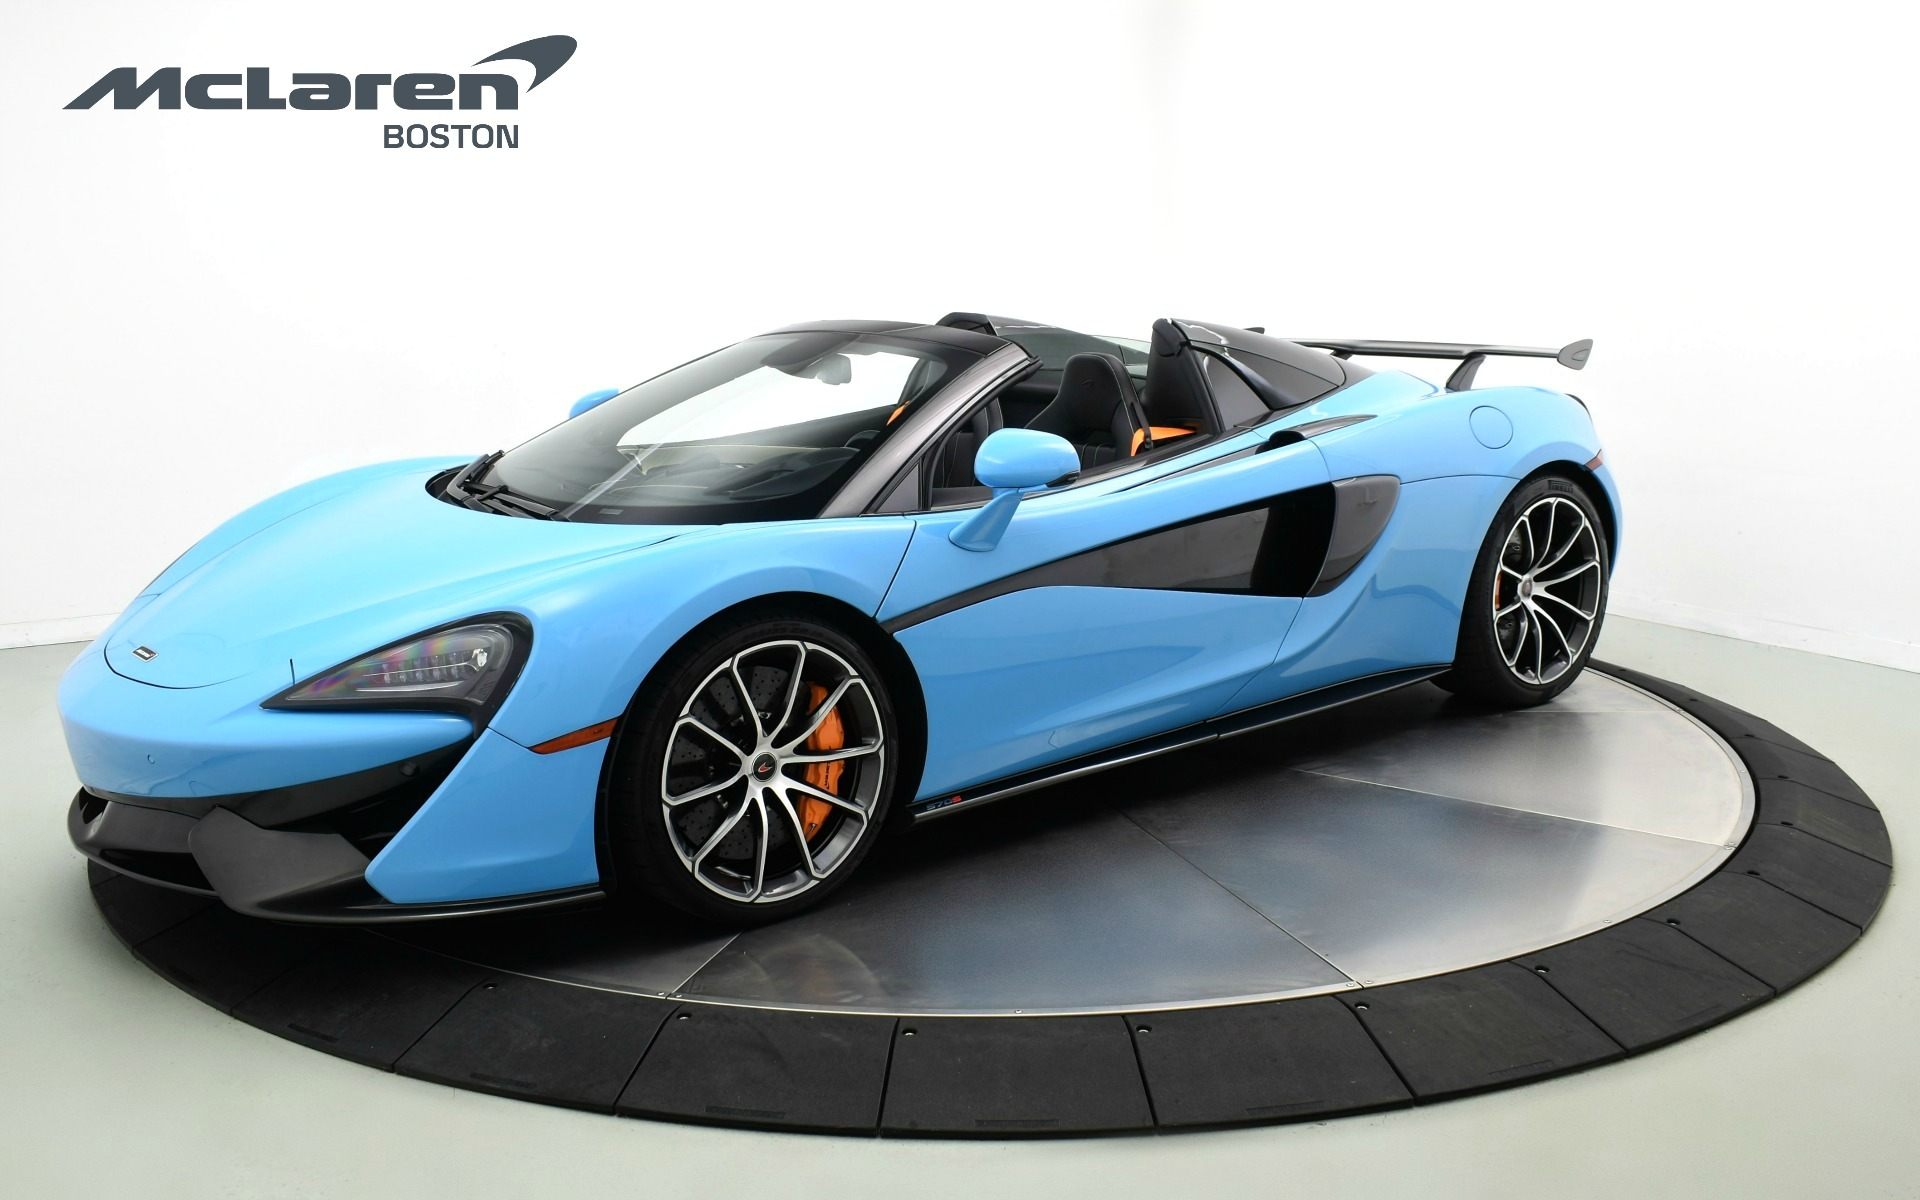 2018 mclaren 570s spider for sale in norwell, ma 004209 | mclaren boston